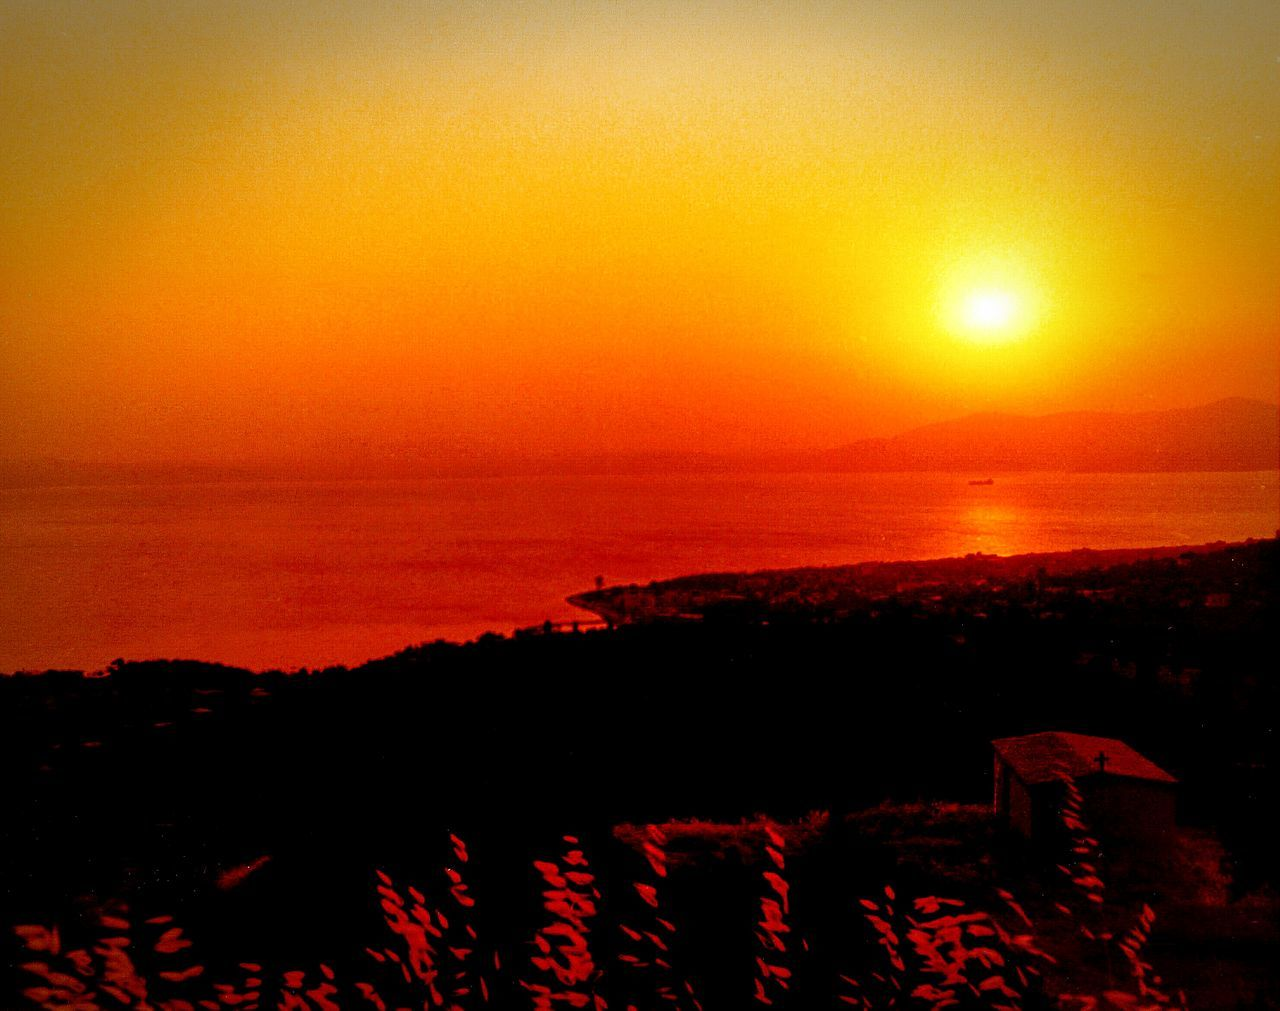 Sunrise Church Country Church Sunrise_sunsets_aroundworld Sunrise_Collection Turn Your Lights Down Low Tranquility A Moment Of Zen... Water Reflections Reflections Shades Of Red Showcase: January No People Sea Golden Hour Yellow Sky Creative Light And Shadow 35mm Film Analog Camera Vintage Sunrise Silhouette South Evoikos Gulf 43 Golden Moments